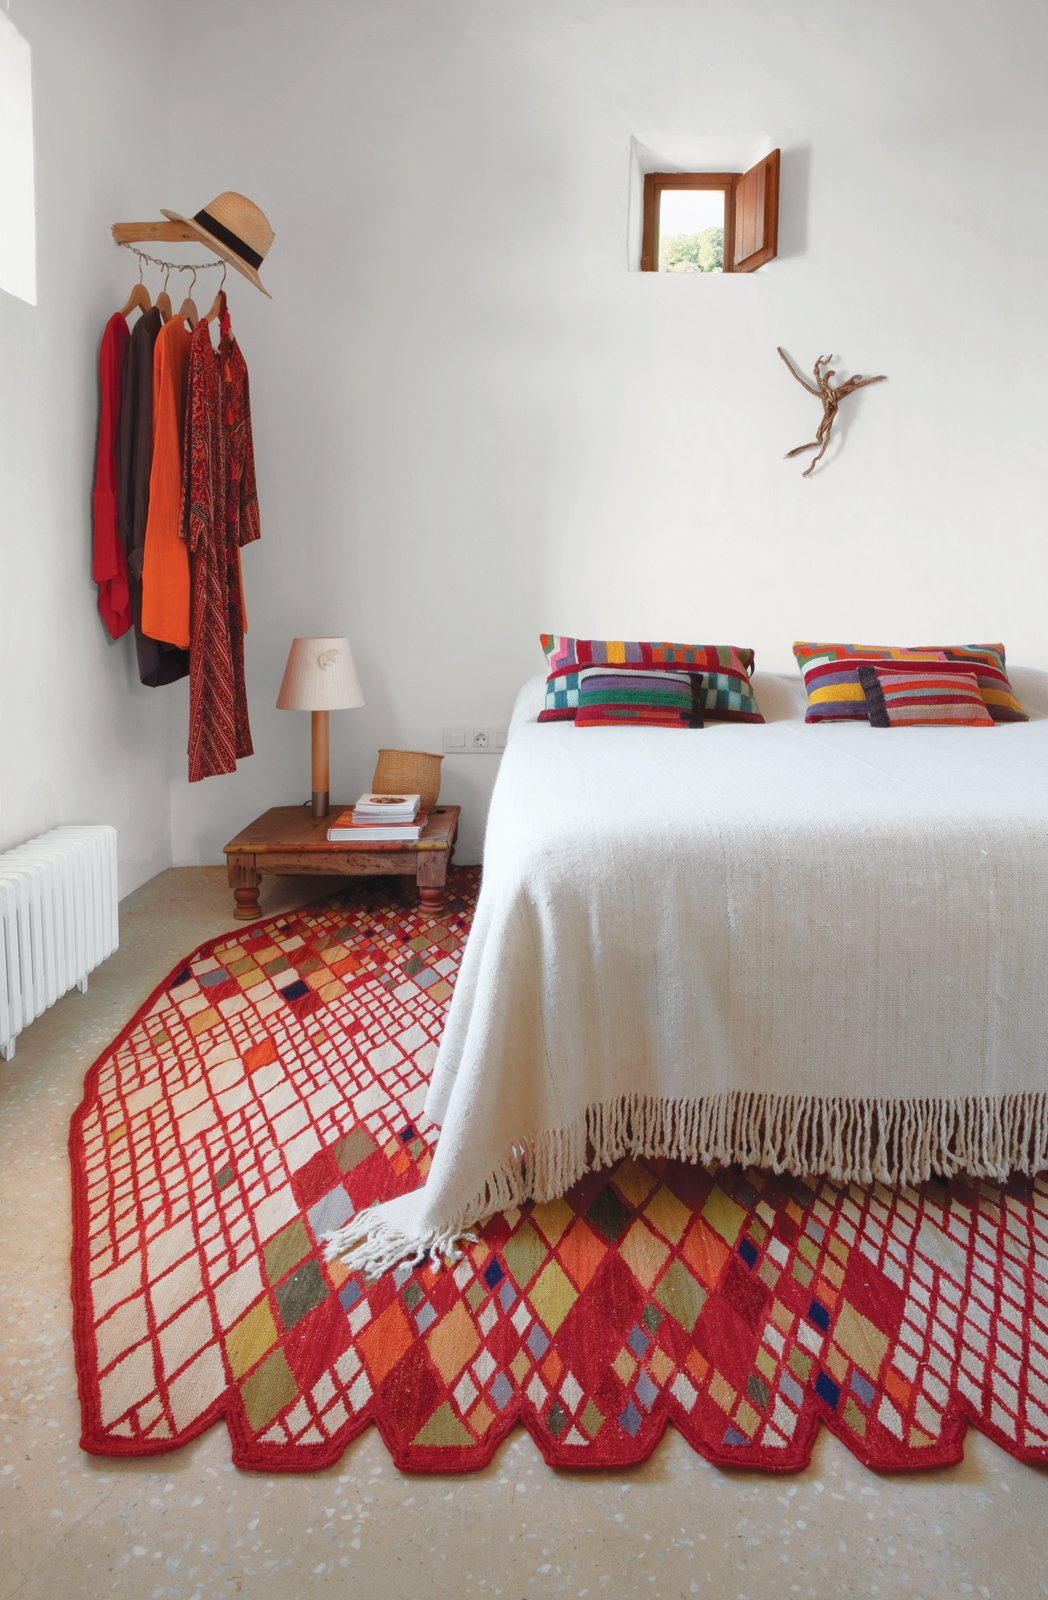 Bedroom, Bed, Night Stands, Table Lighting, and Rug Floor An earlier version of the Losanges rug, part of Marquina's 2011 collection, anchors the master bedroom of Nani Marquina's Ibiza home. Photo by Albert Font.  Best Photos from Preview 'Another Side of Ibiza'